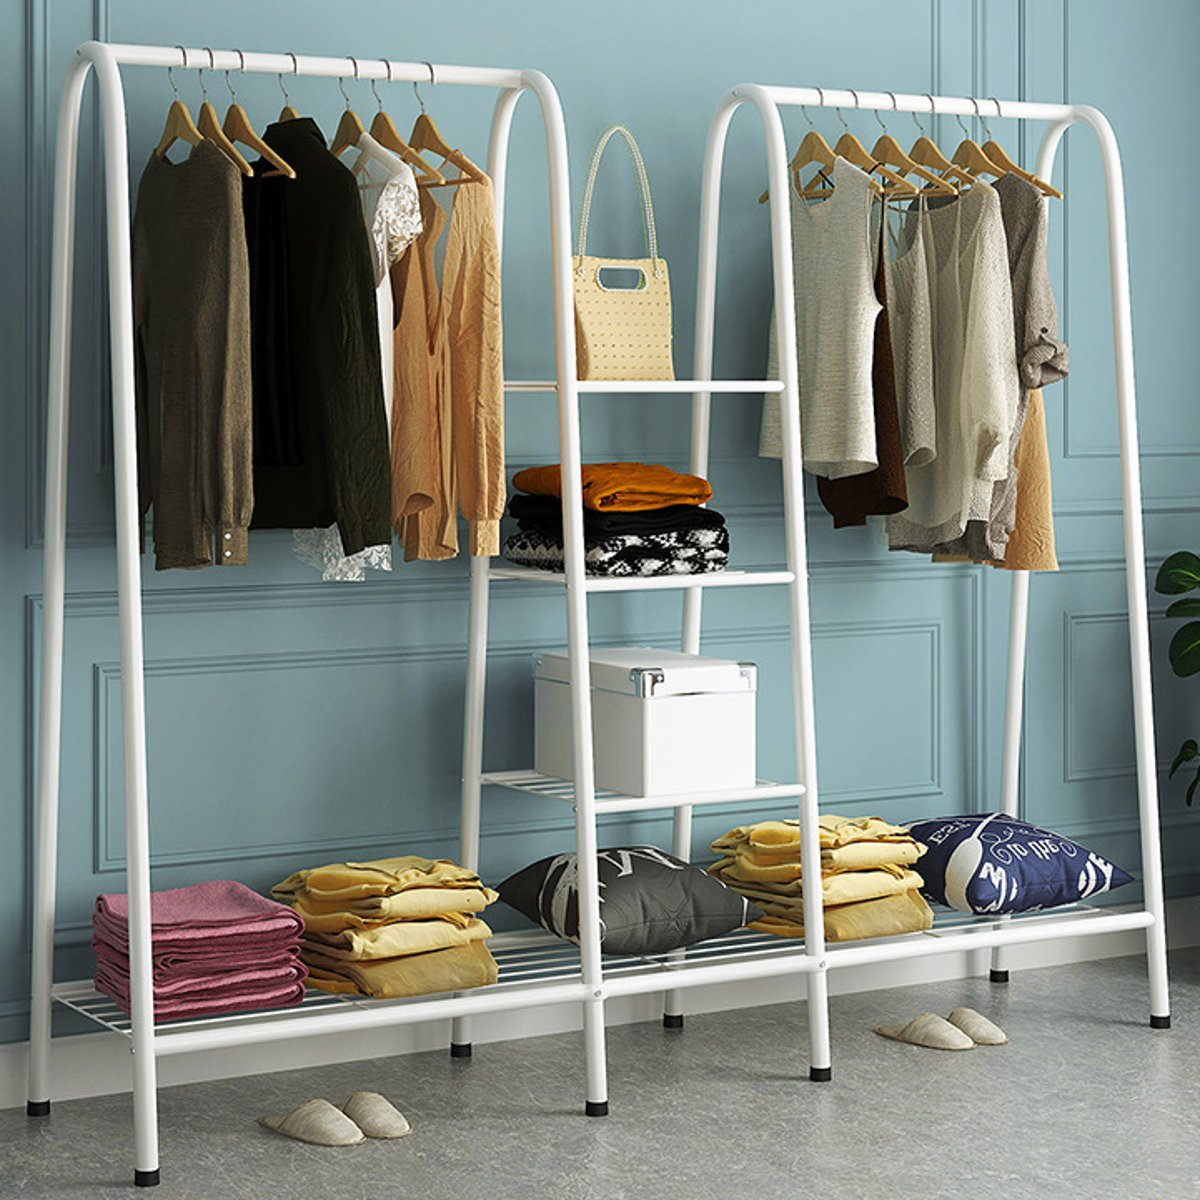 Metal Iron Coat Rack Clothing Rack Garment font b Closet b font Organizer Clothes Hanger Storage